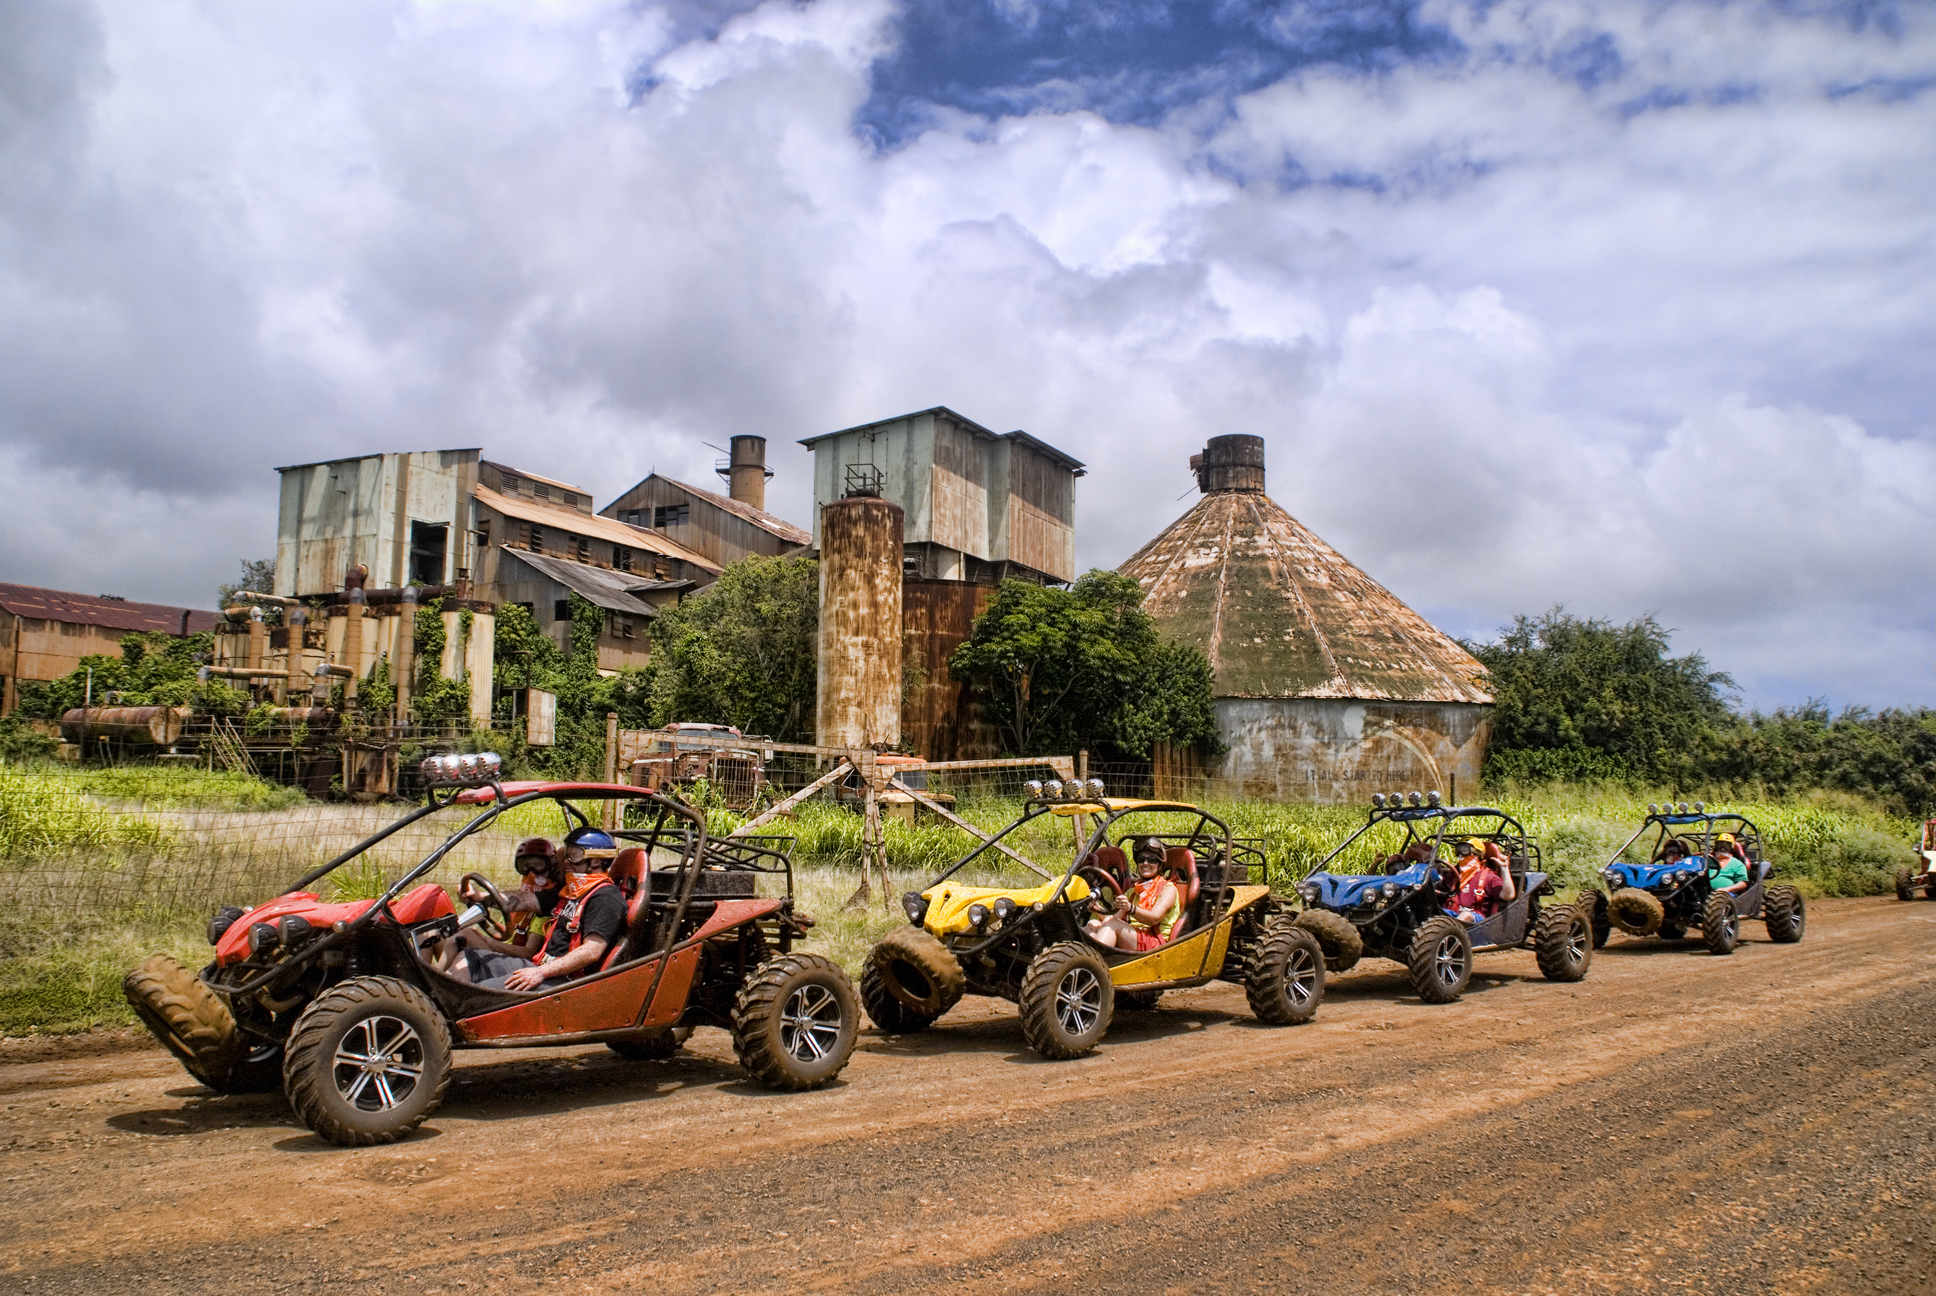 A big shout out to Hawaii-based Kauai ATV Tours for forwarding this great picture!